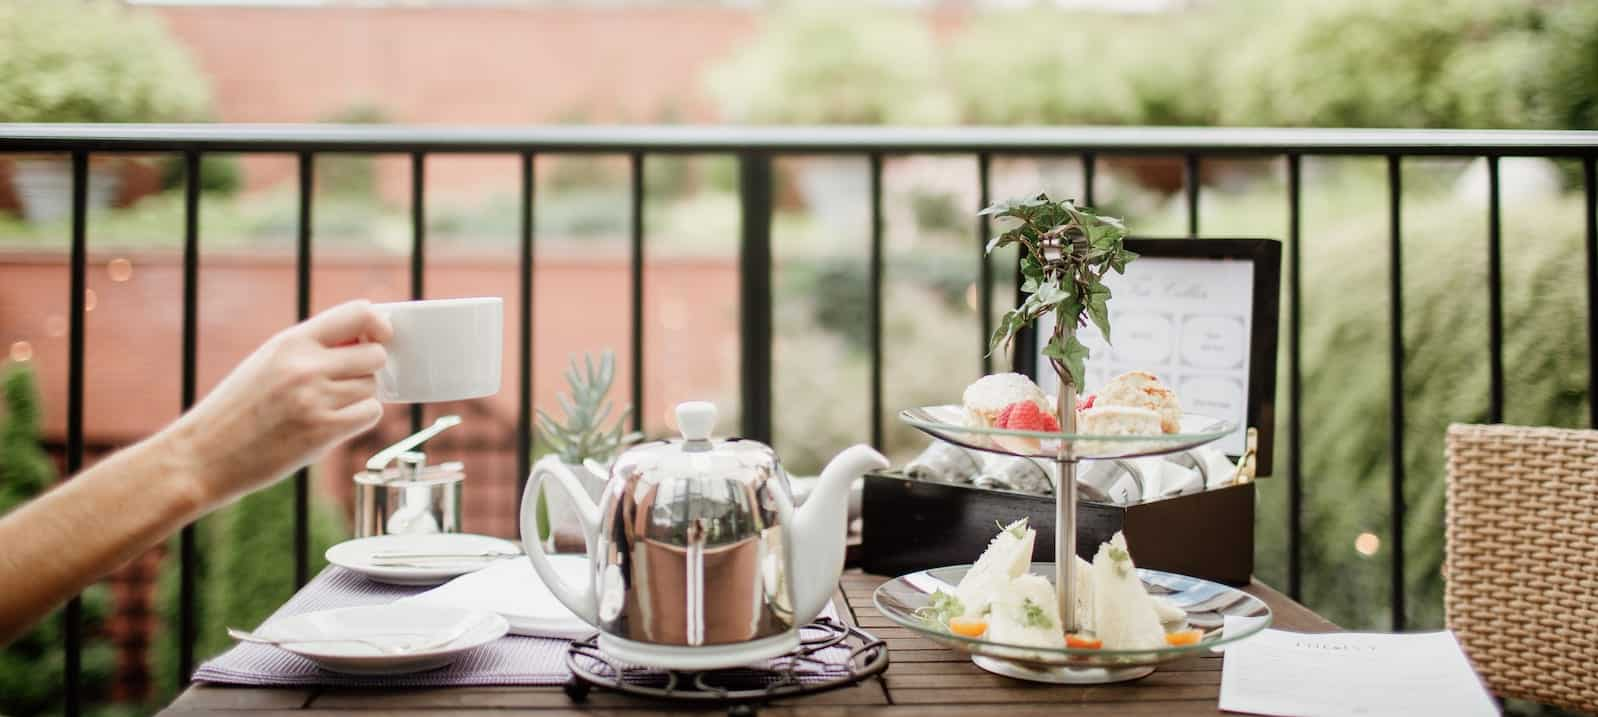 Pot of tea and sandwiches on table outside at The Ivy Hotel in Baltimore, Maryland.